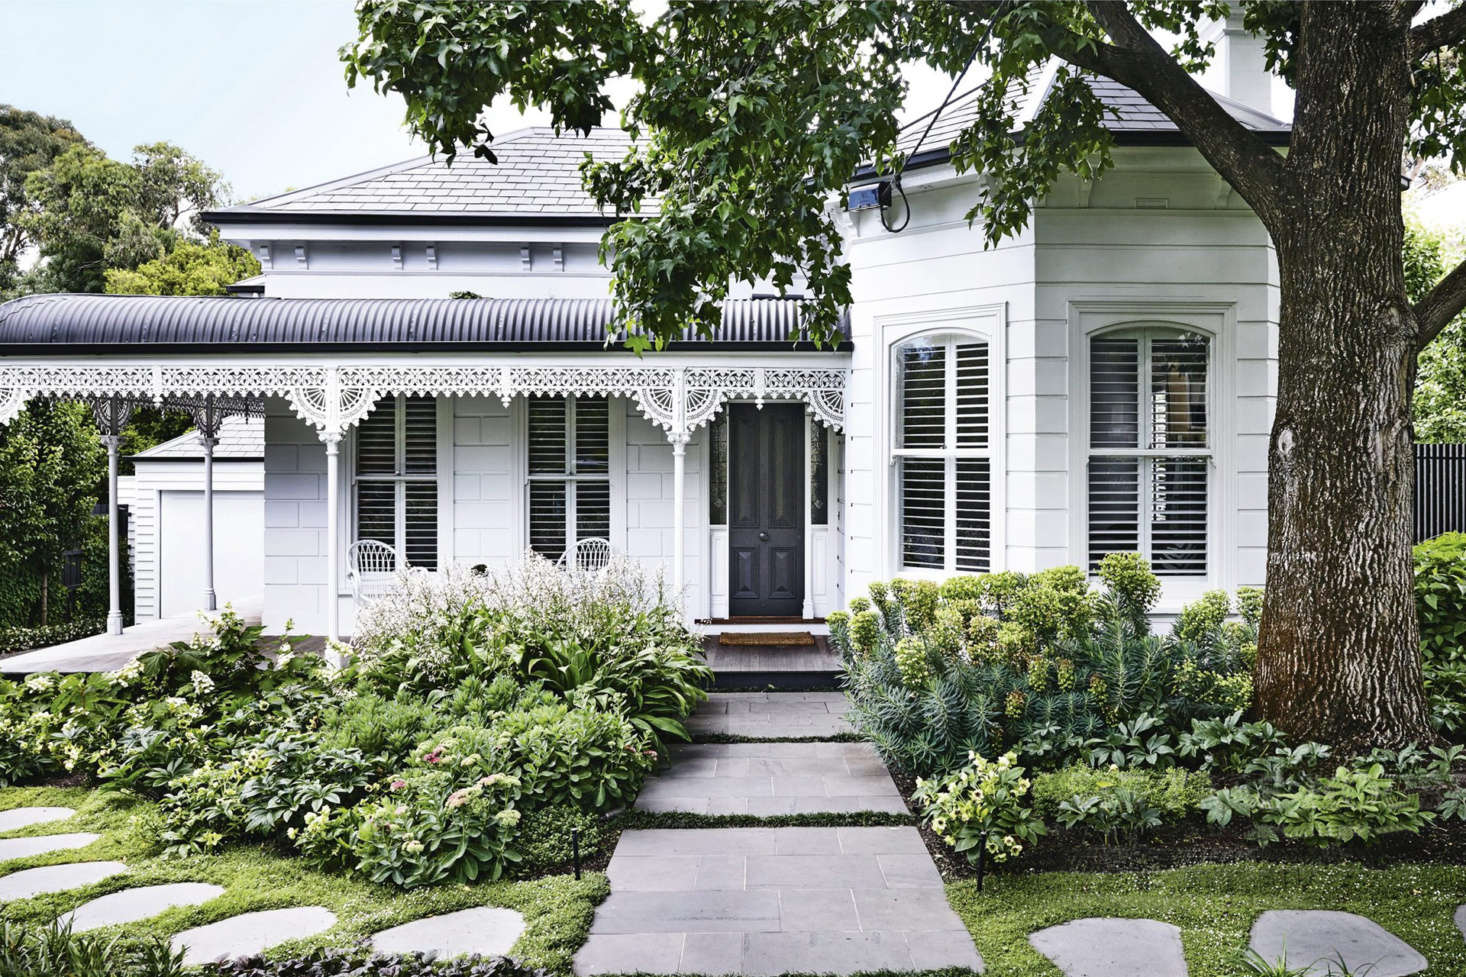 A white Victorian weatherboard facade is offset by a black roof and door. Photograph by Derek Swalwell, courtesy of Ben Scott Garden Design, from Before & After: A Two-Faced Victorian Garden with a Secret.